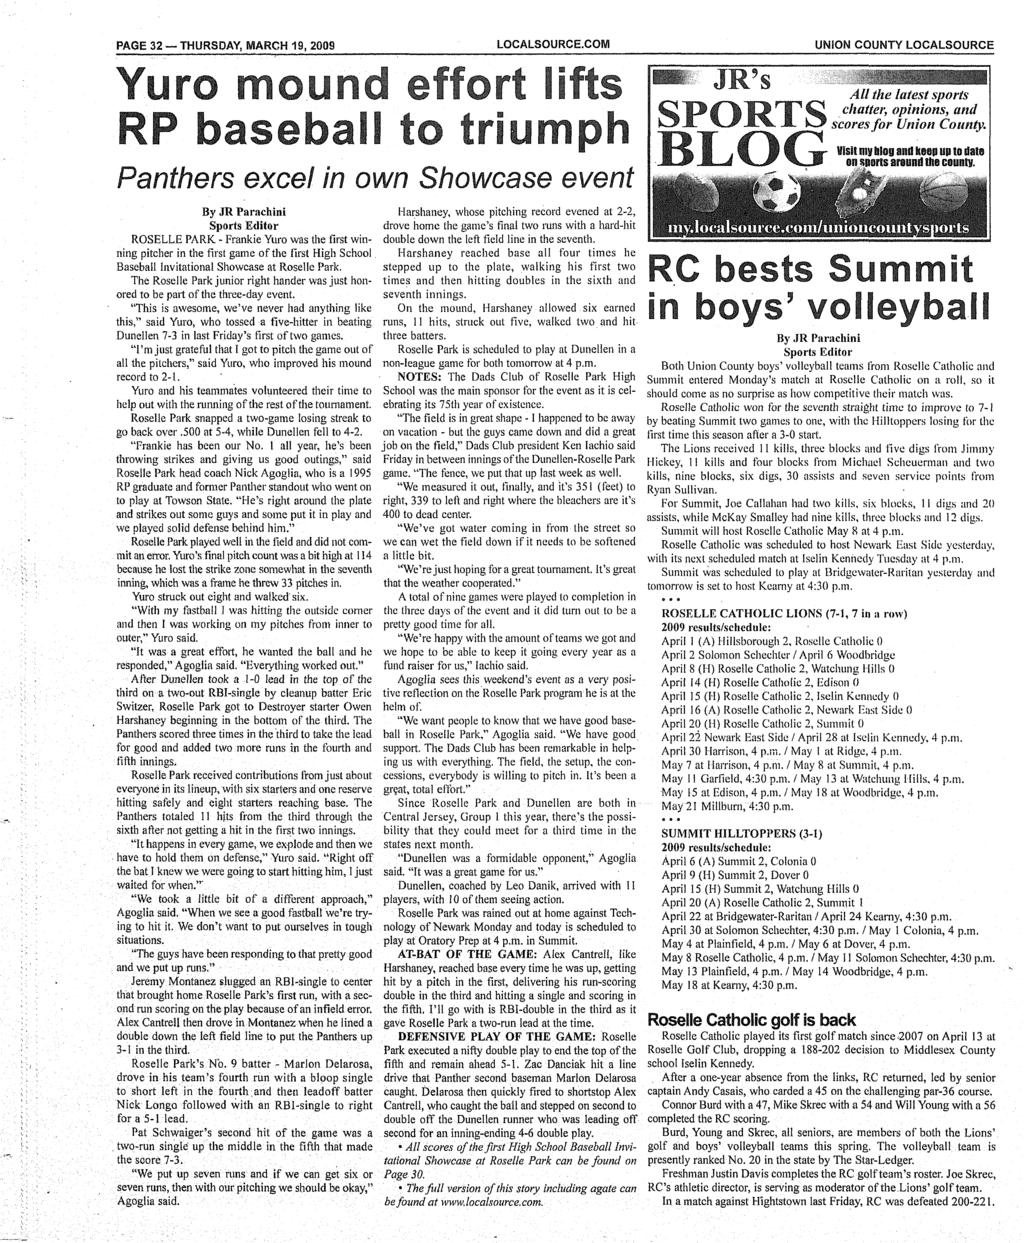 Cuts By Joseph M Dalise Pdf Xl Data Hodrod Rp 50000 Page 32 Thursday March 19 2009 Localsourcecom Union County Localsource Yuro Mound